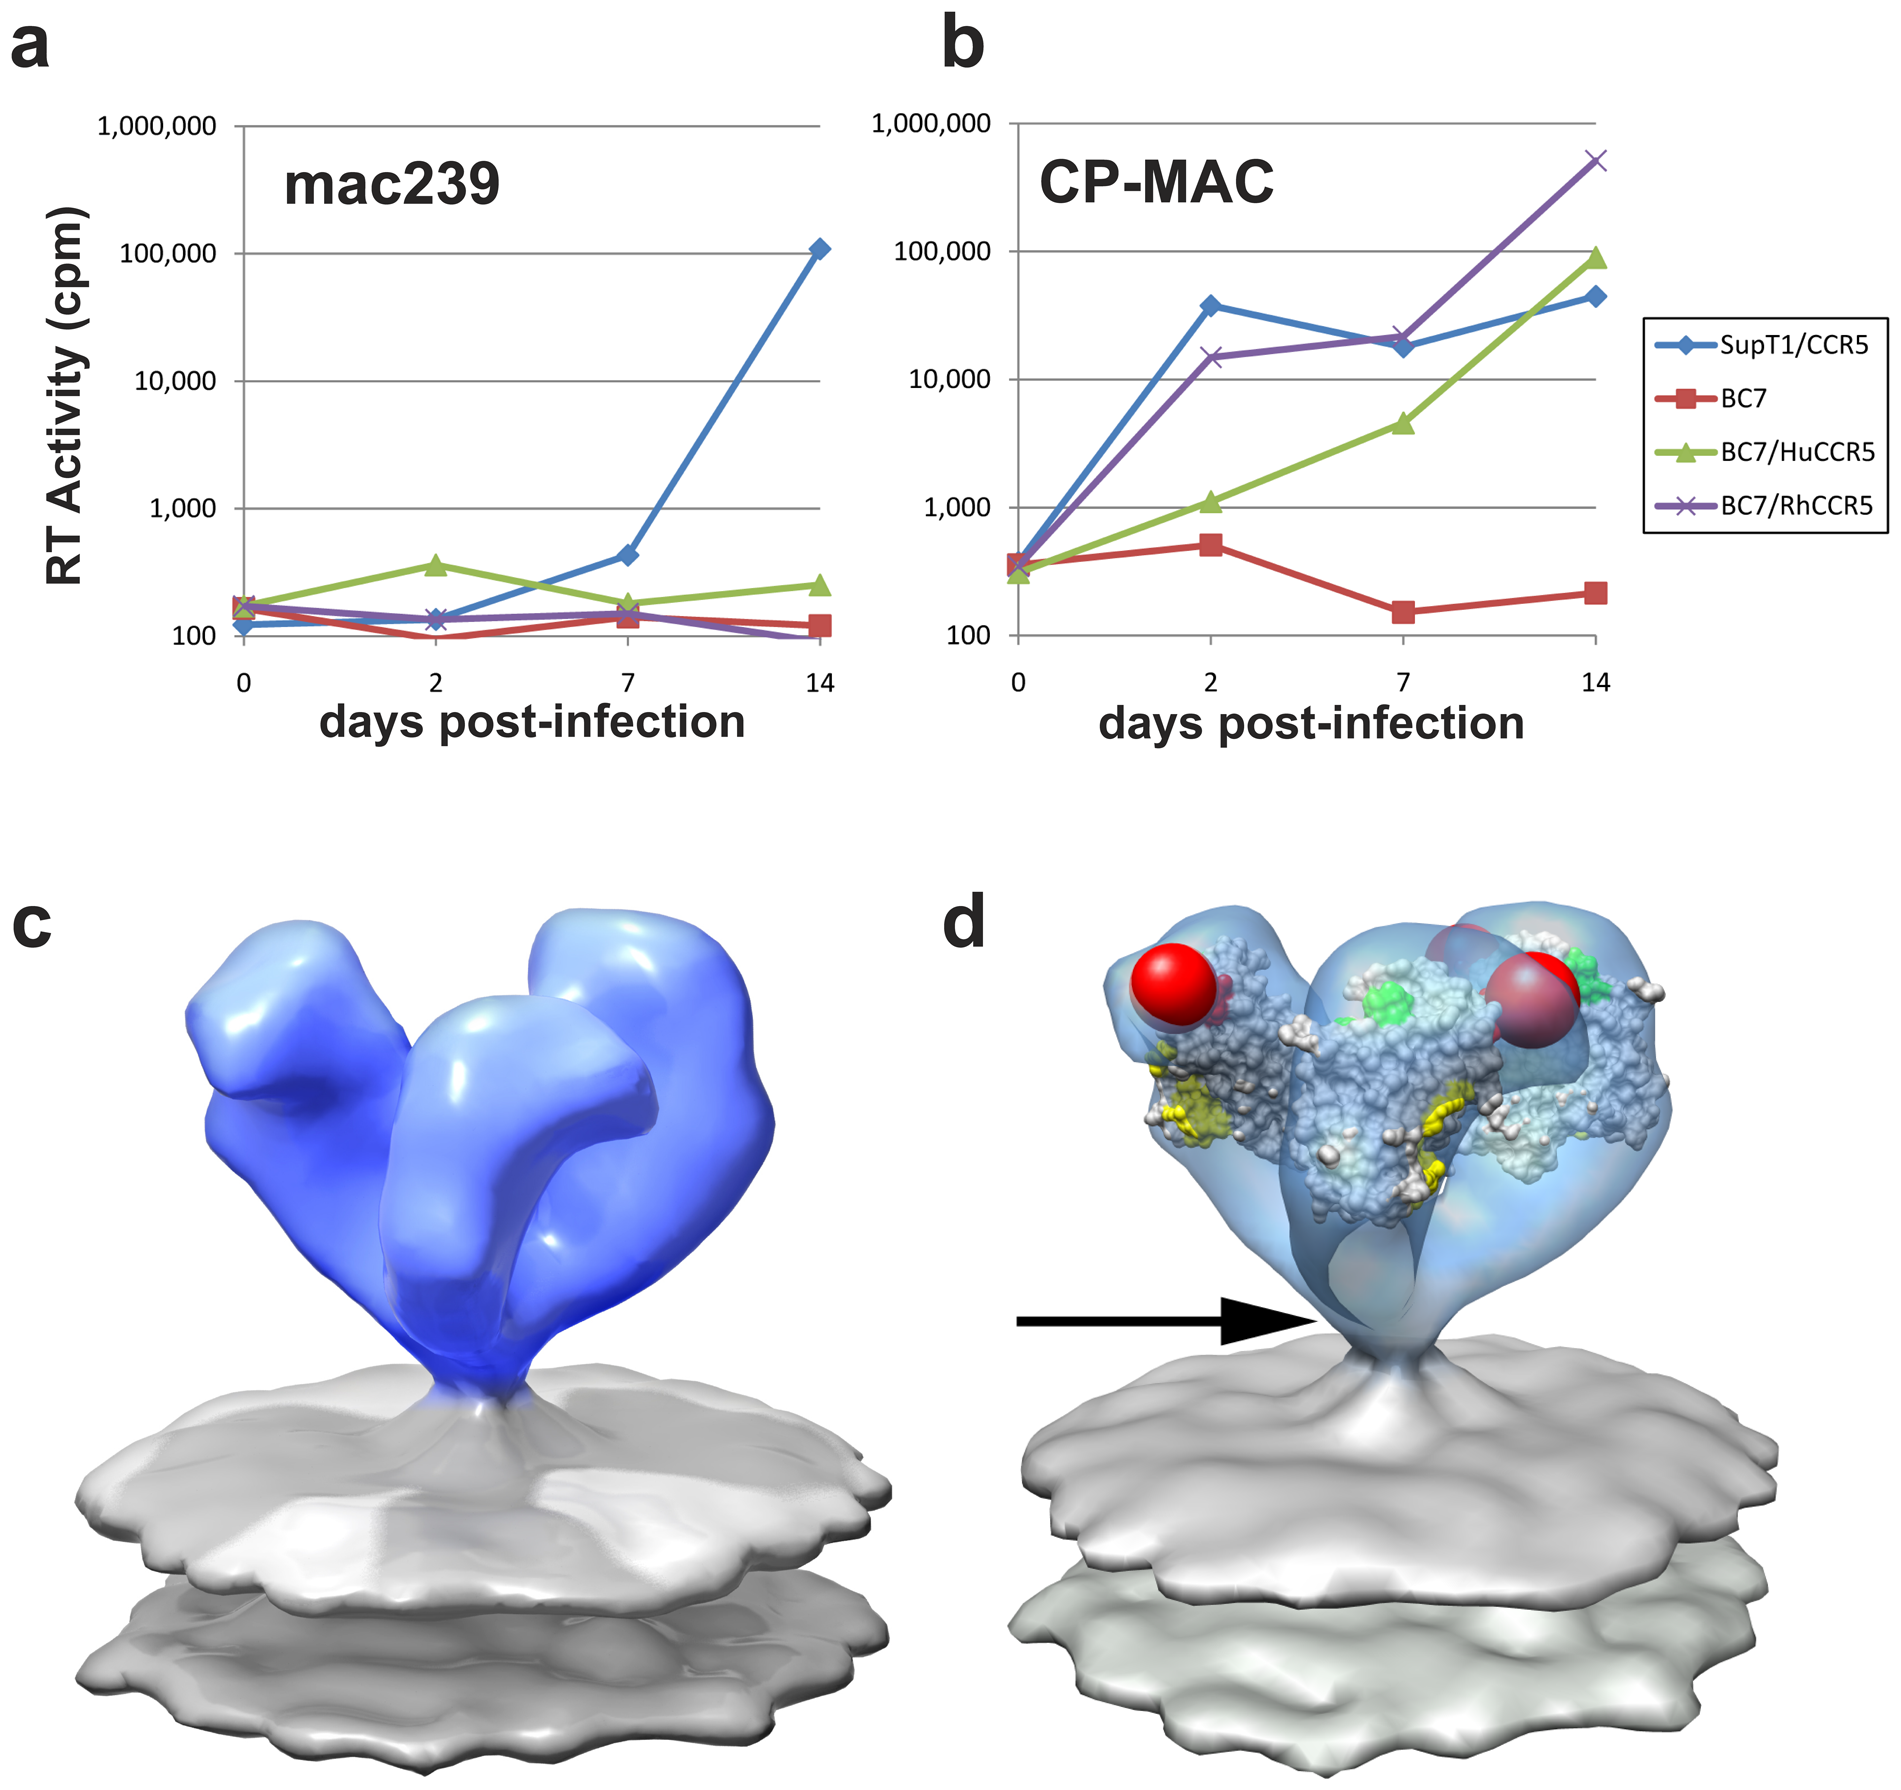 Molecular architecture of constitutively open trimeric SIV Env from the CD4-independent CP-MAC strain.